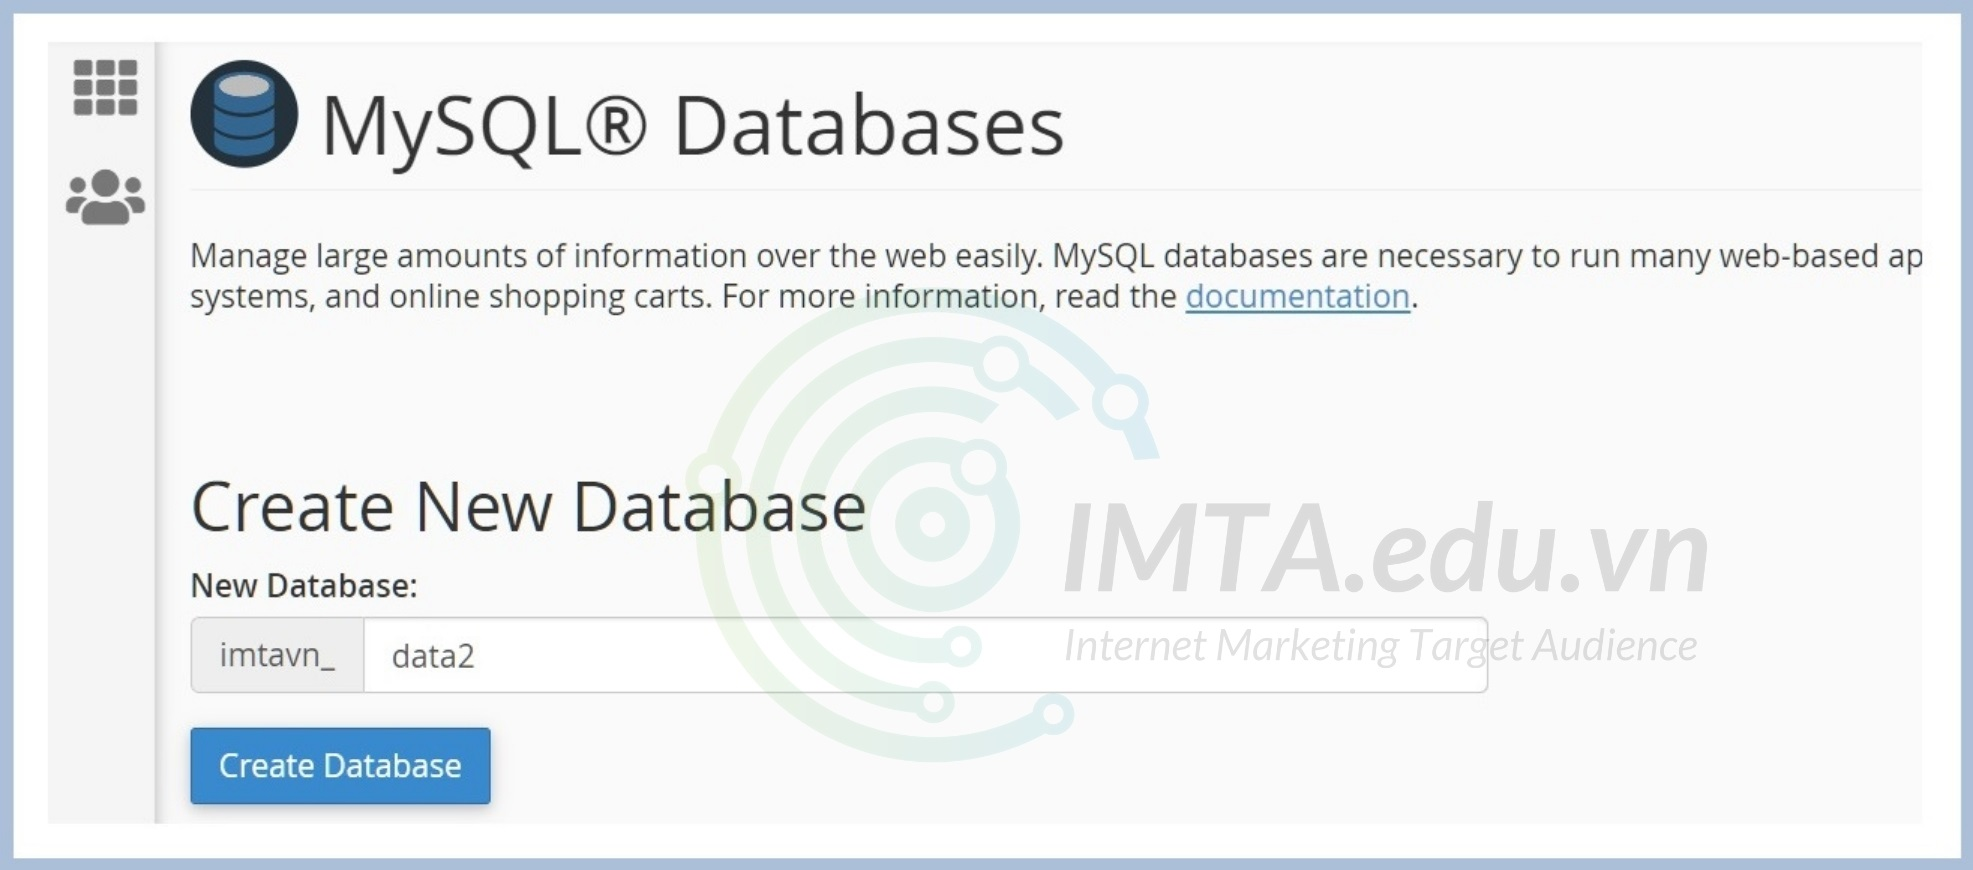 Tạo Database mới cho website